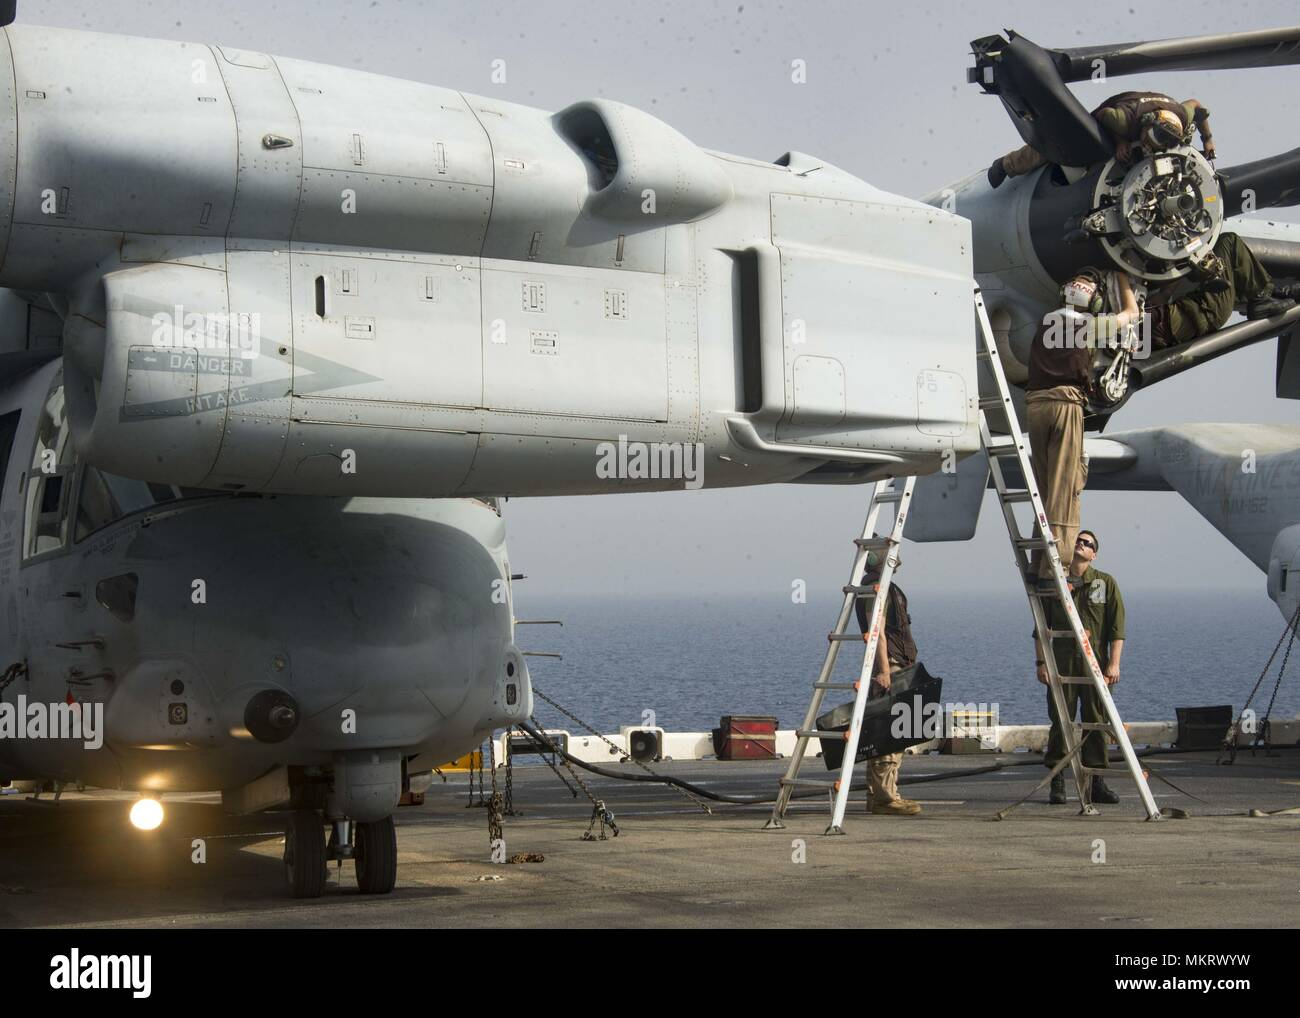 180507-N-ZG607-0102 U.S. 5TH FLEET AREA OF OPERATIONS (May 7, 2018) Marines assigned to the 26th Marine Expeditionary Unit perform maintenance on an MV-22 Osprey on the flight deck aboard the Wasp-class amphibious assault ship USS Iwo Jima (LHD 7), May 7, 2018, May 7, 2018. Iwo Jima, homeported in Mayport, Fla. is deployed to the U.S. 5th Fleet area of operations in support of maritime security operations to reassure allies and partners, and preserve the freedom of navigation and the free flow of commerce in the region. (U.S. Navy photo by Mass Communication Specialist Seaman Dominick A. Creme Stock Photo